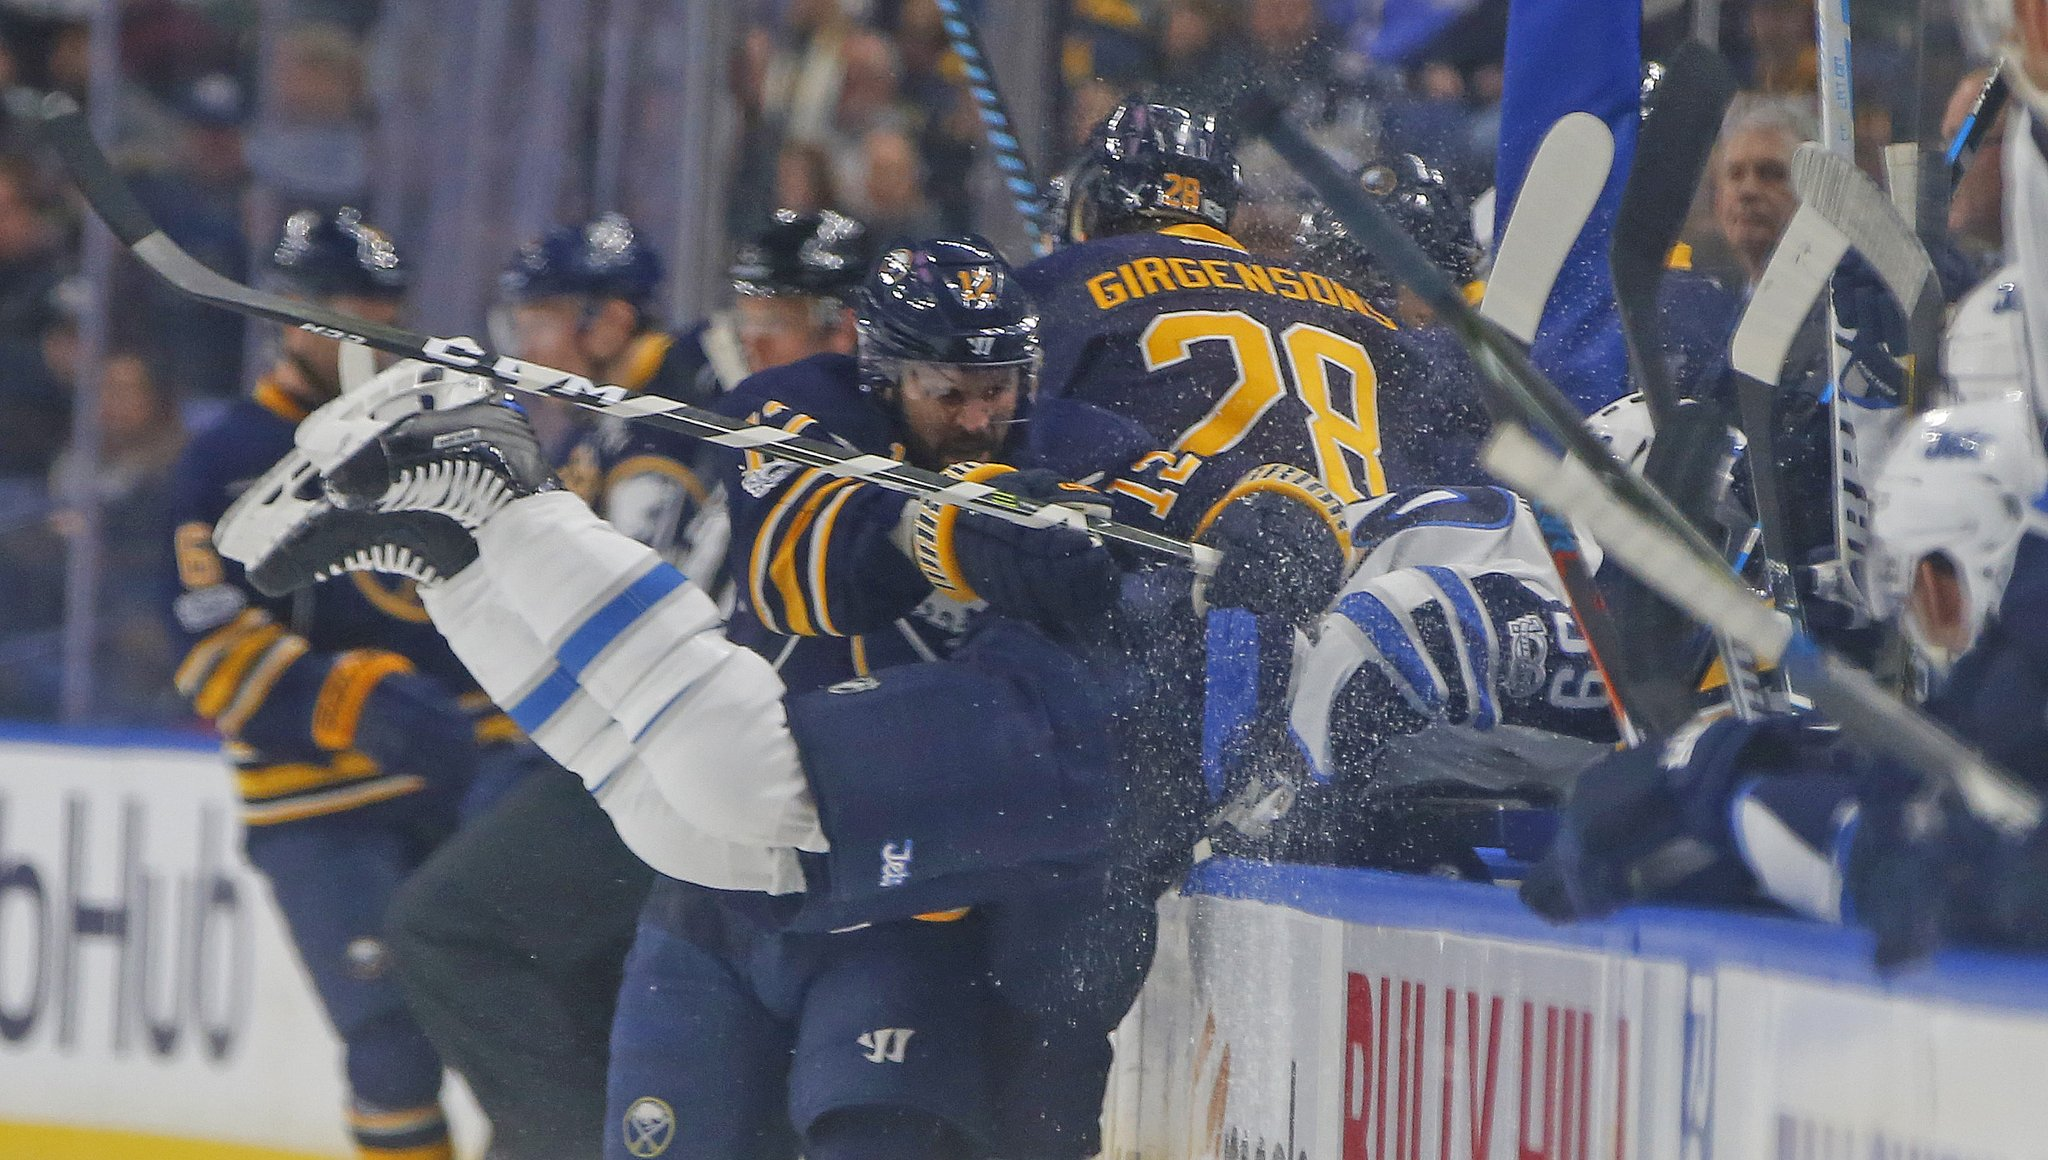 Brian Gionta and the Sabres got physical with Toby Enstrom and the Jets. (Harry Scull Jr./Buffalo News)